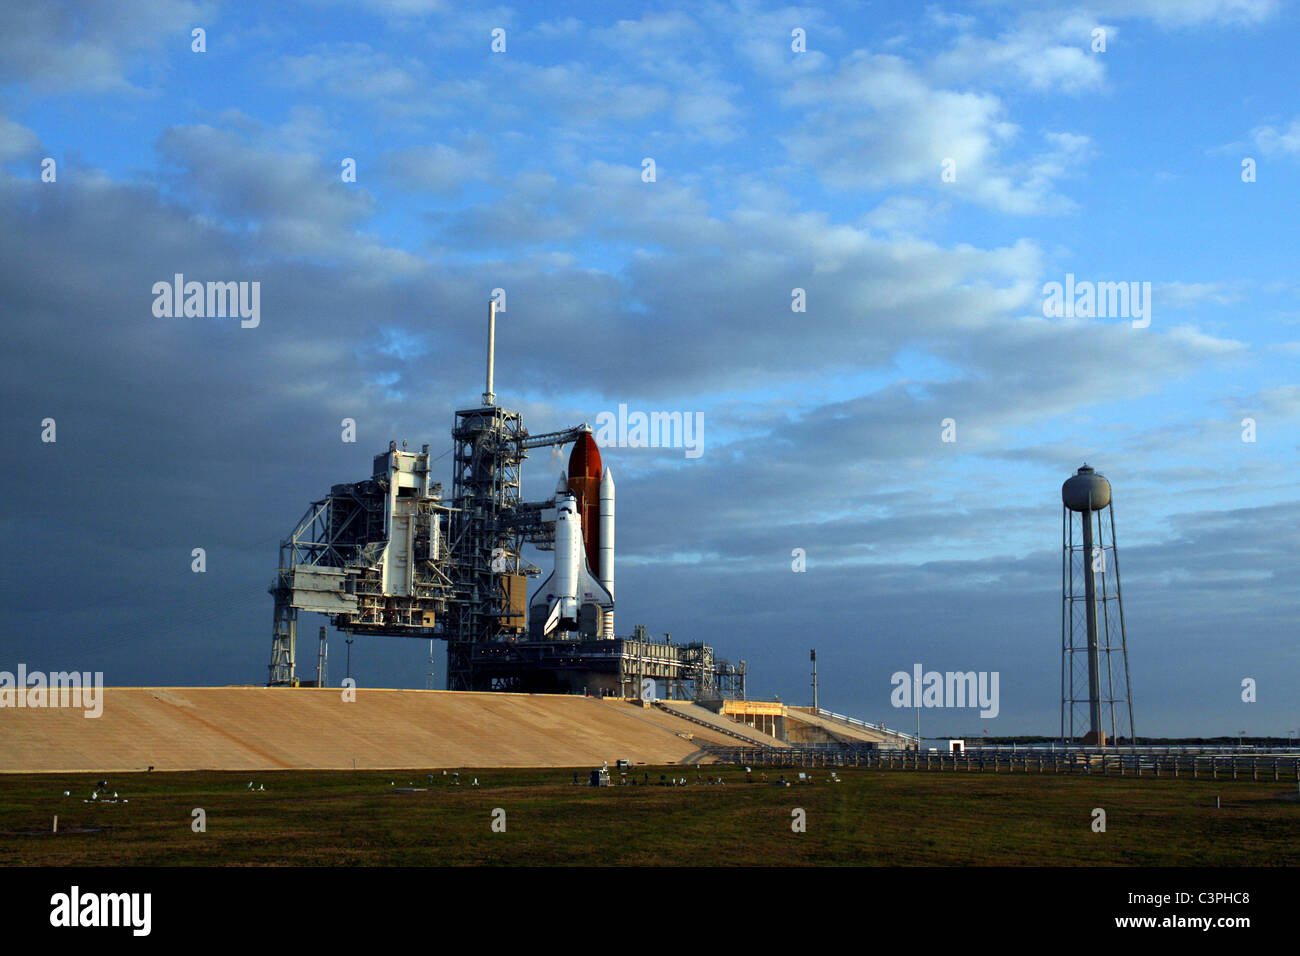 Space Shuttle Endeavour, final launch of the Space Shuttle Endeavour, STS-134 mission. - Stock Image